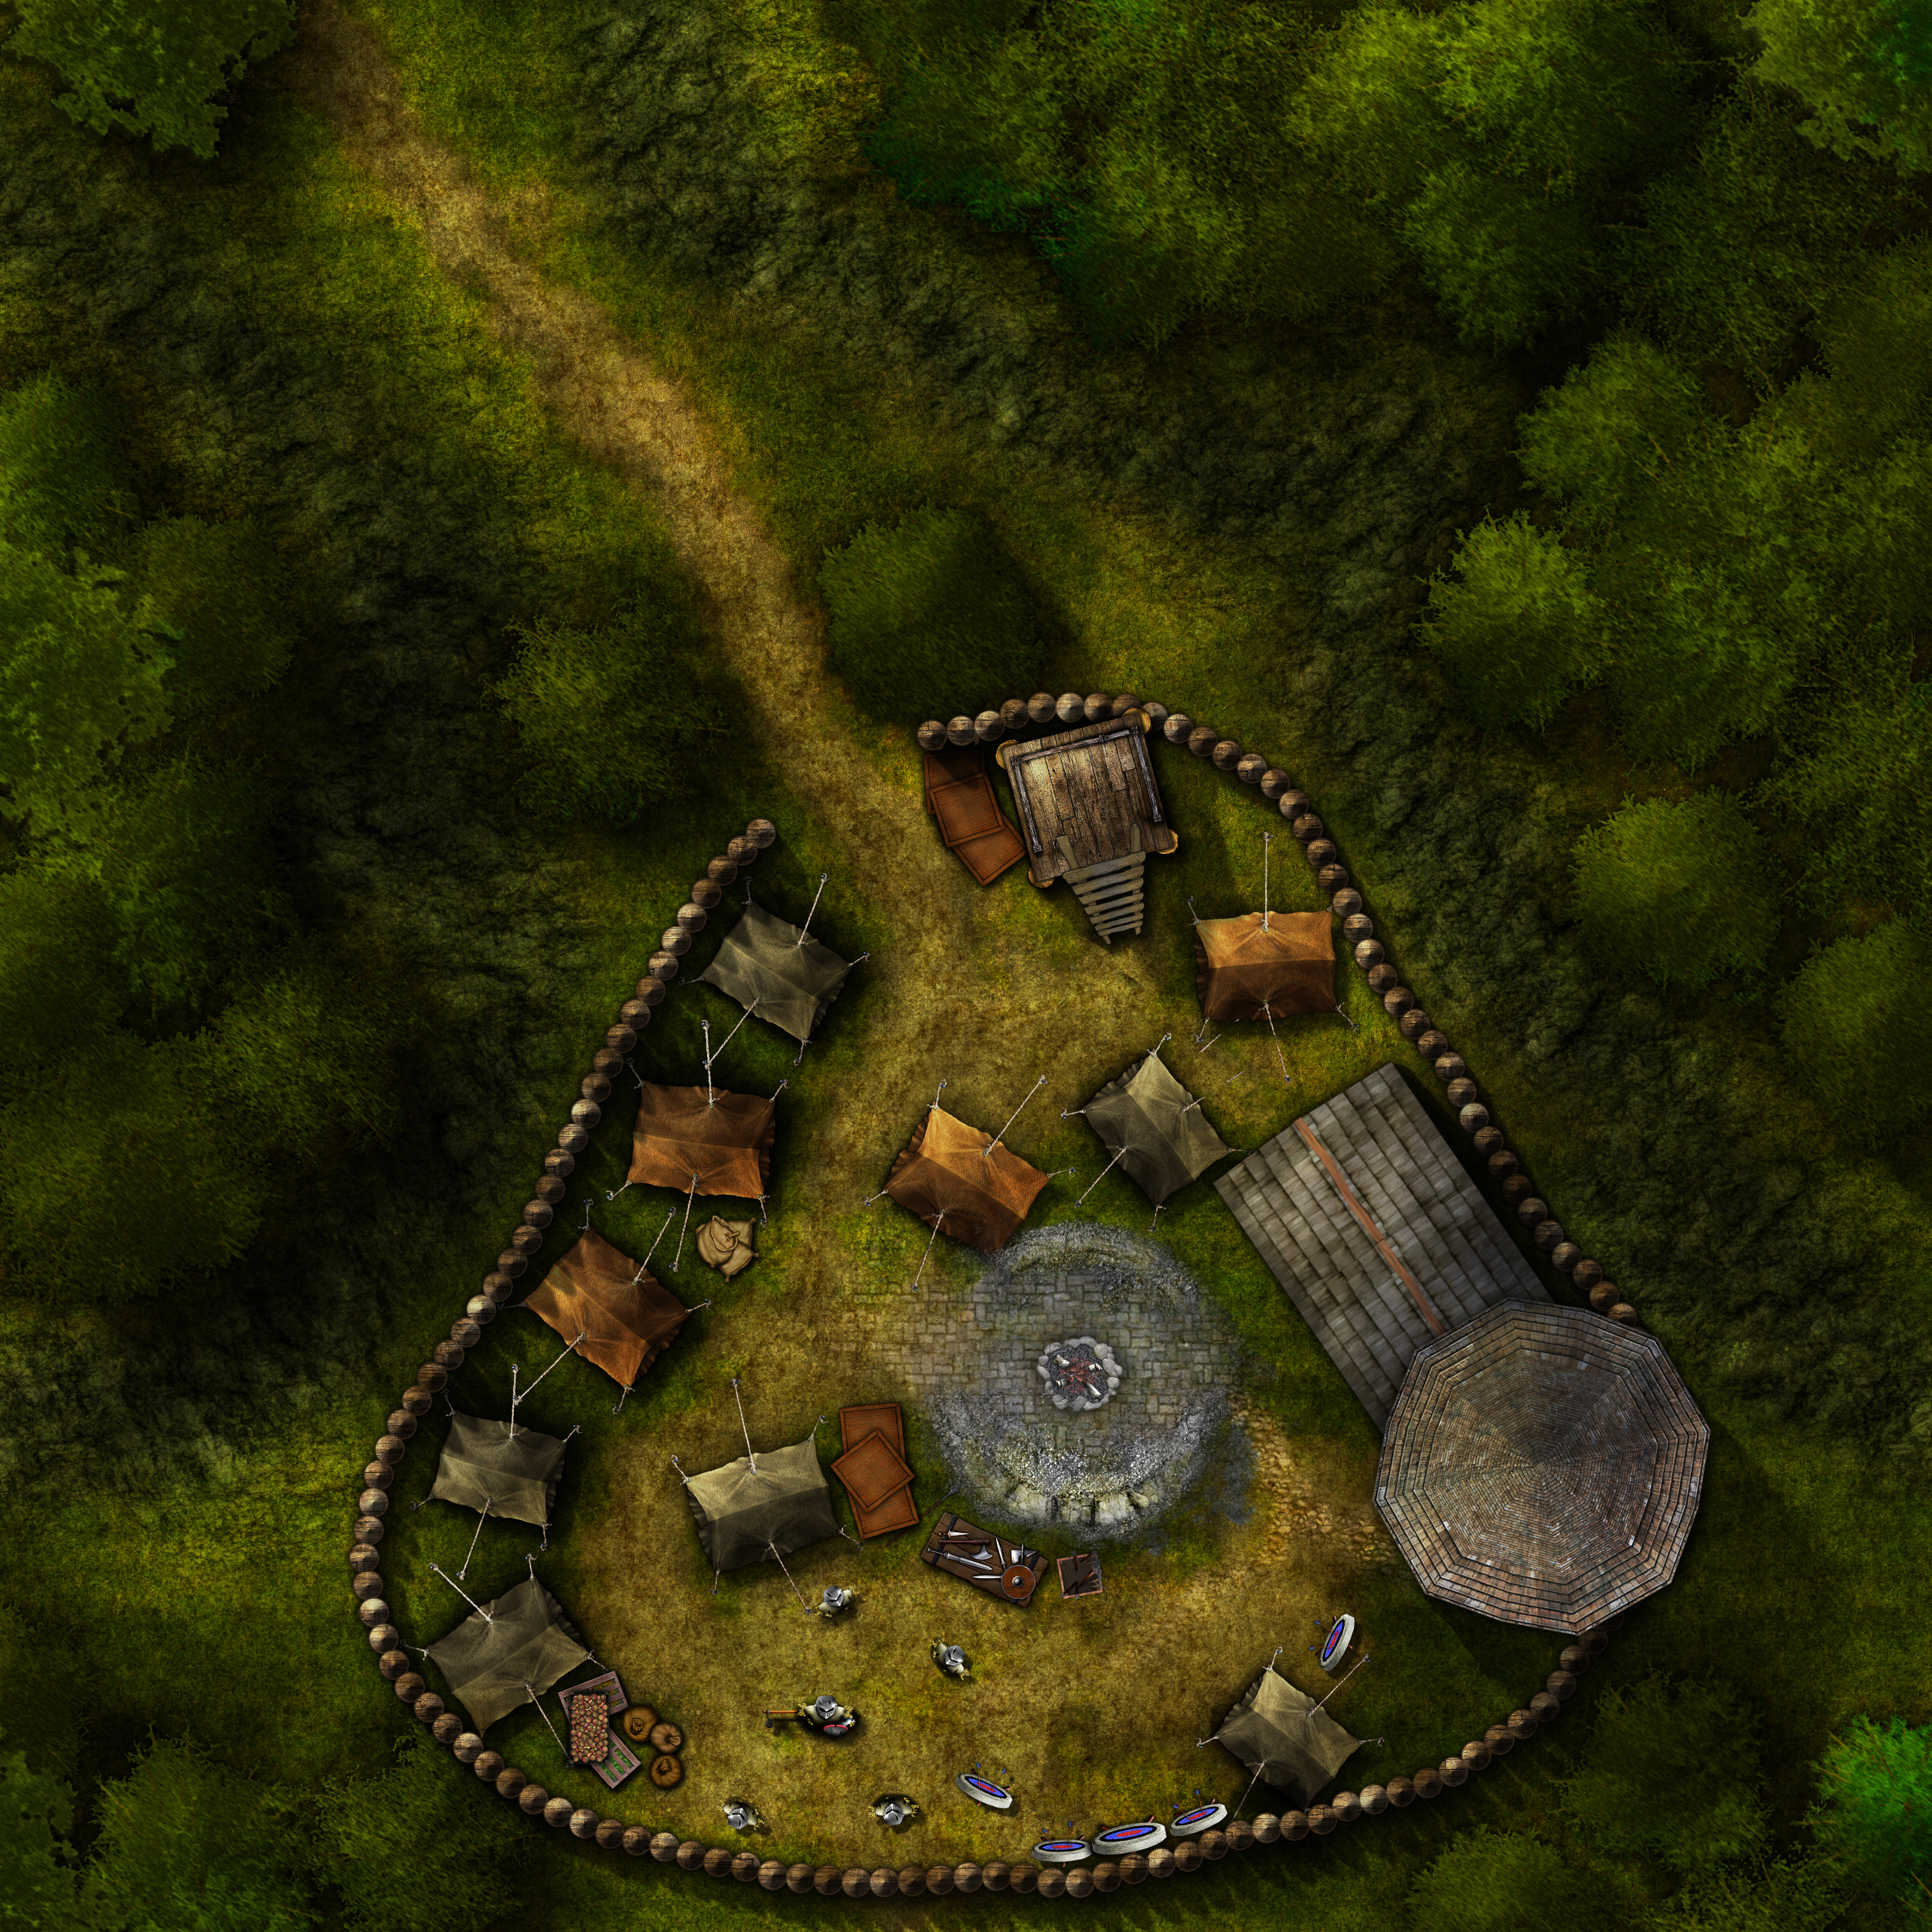 Iron Tower Mercenary Camp